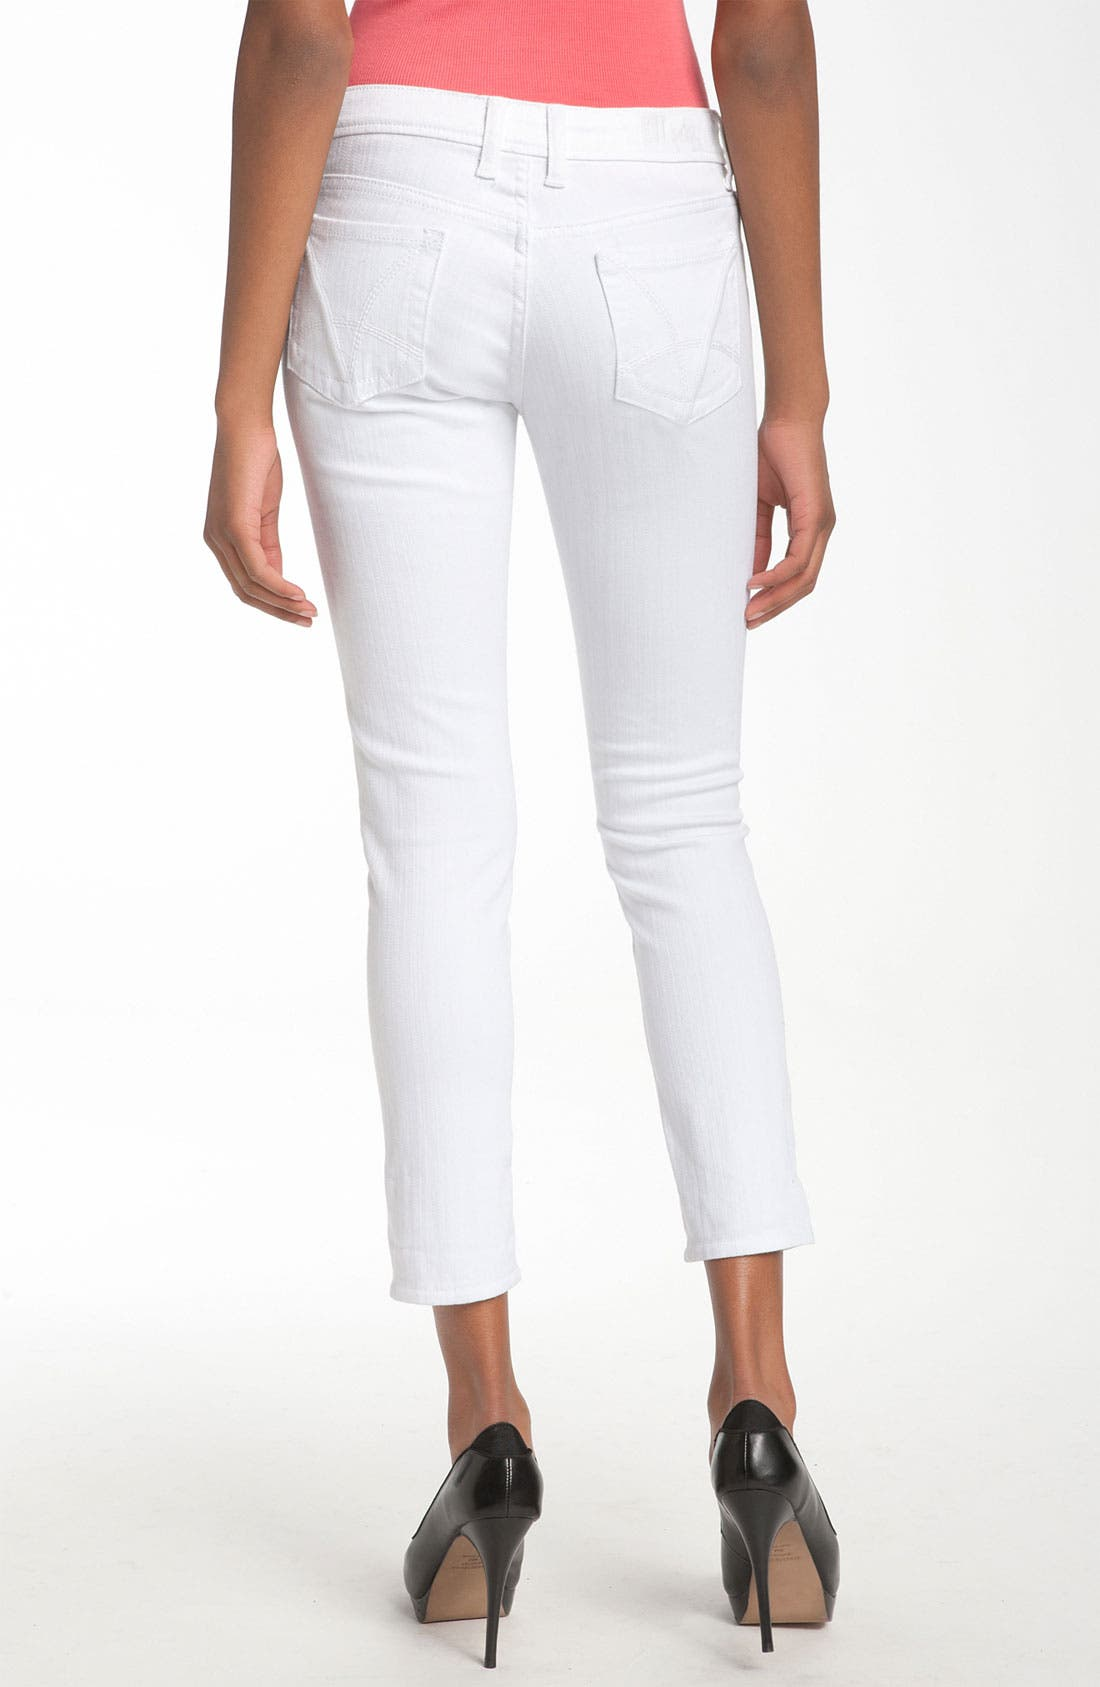 Alternate Image 1 Selected - KUT from the Kloth 'Catherine' Slim Boyfriend Jeans (White Wash)